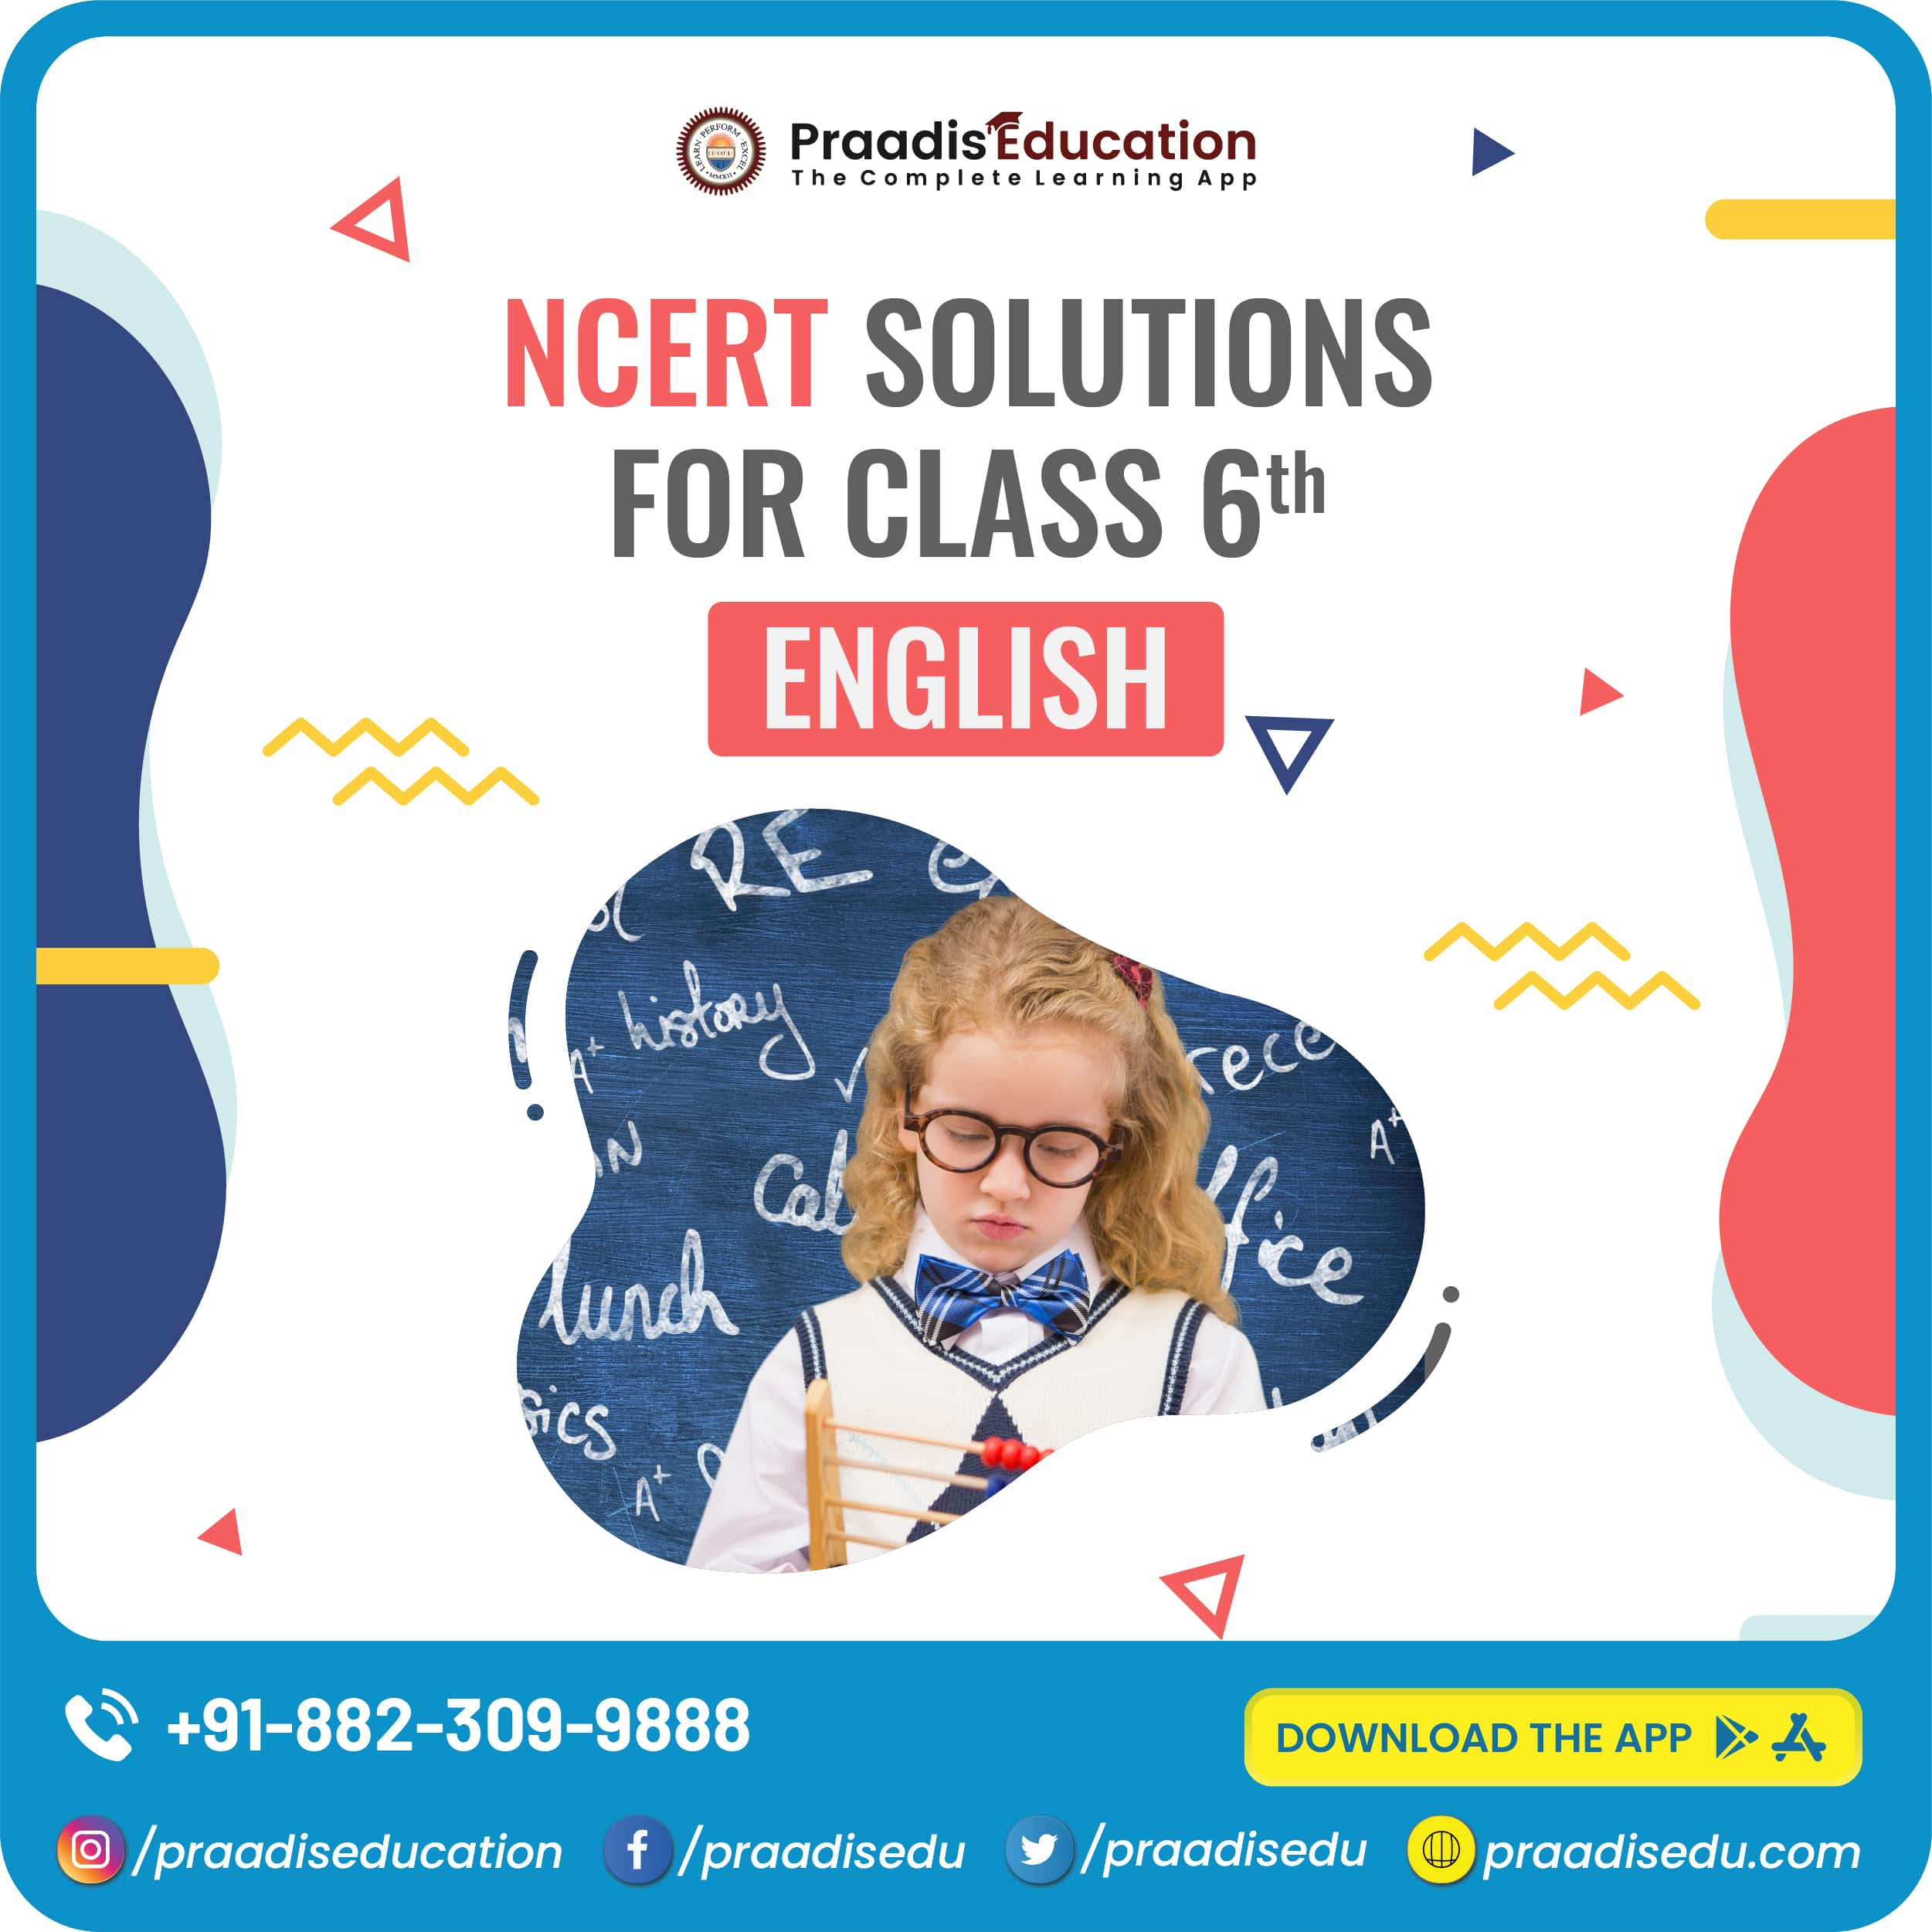 NCERT solutions for class 6 English